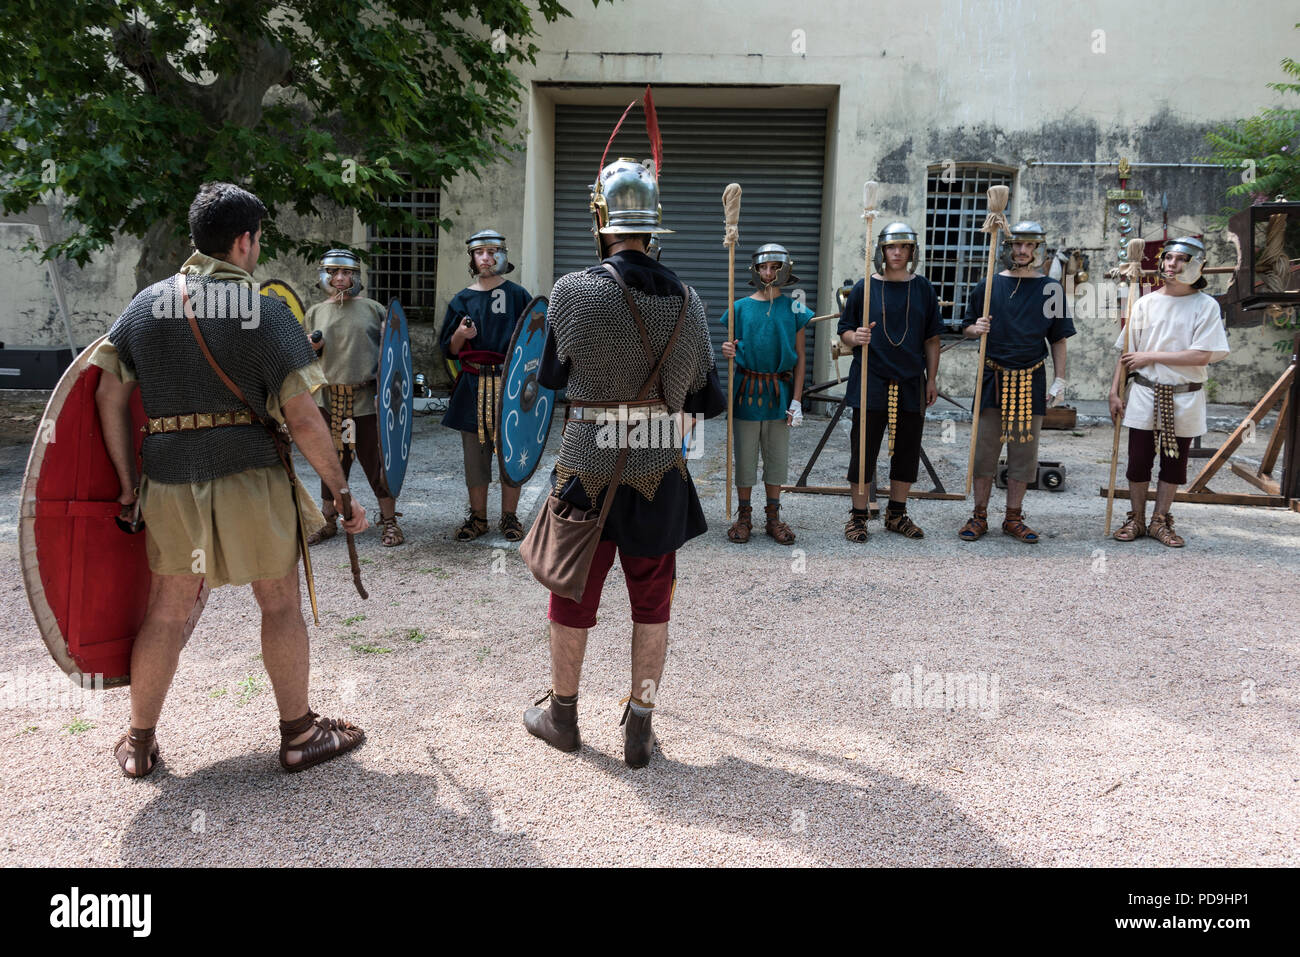 A group of Roman soldiers taking part in a battle re-enactment during a history event weekend held within the walls of Ajaccio citadel in Ajaccio on C - Stock Image